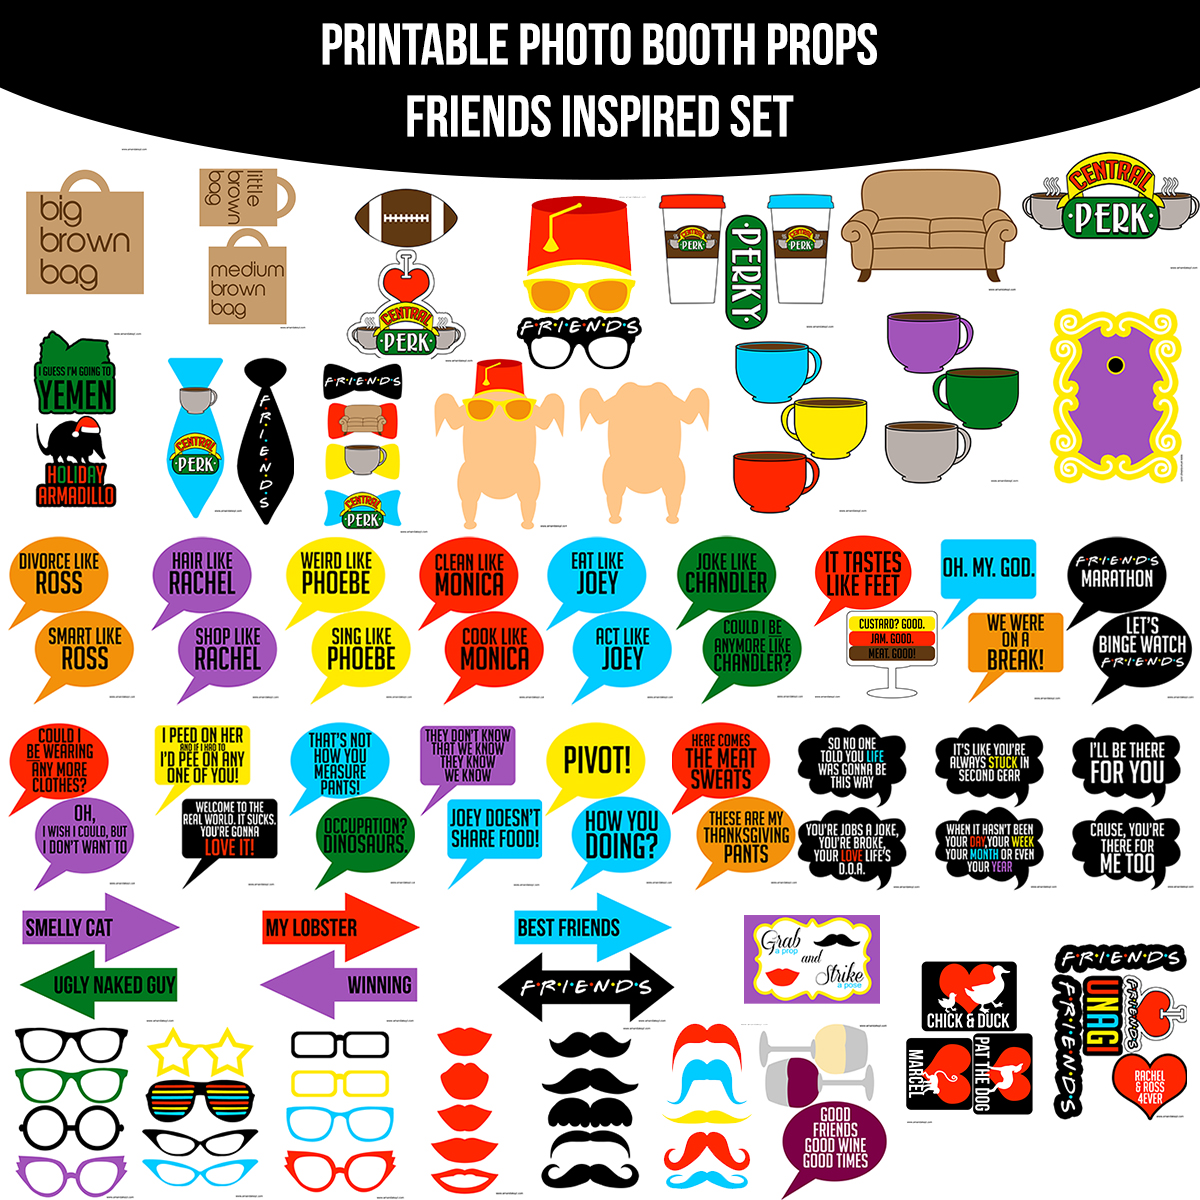 See the Set - To View The Whole Friends TV Show Inspired Printable Photo Booth Prop Set Click Here